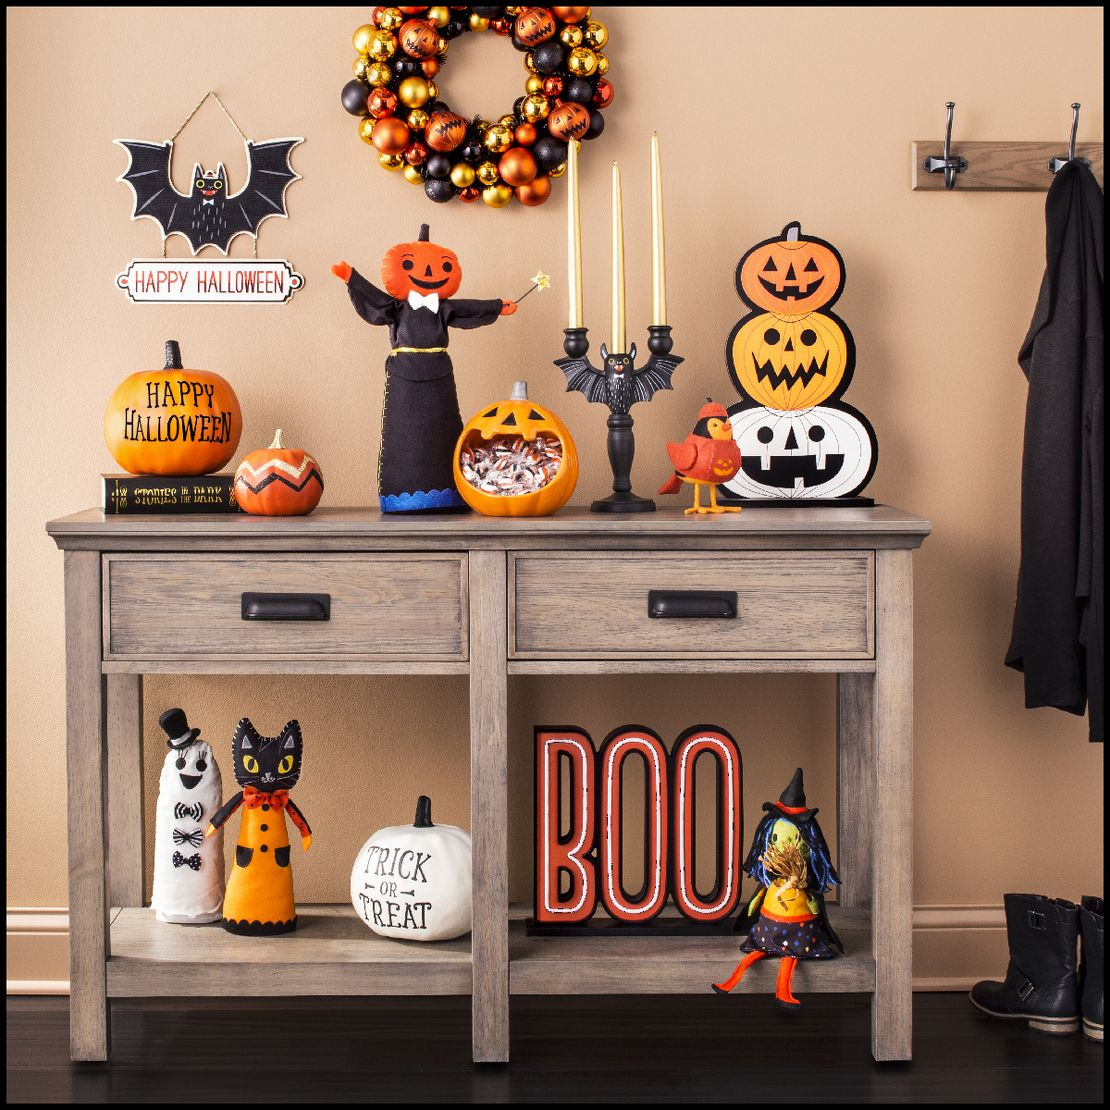 How To Host A Halloween Party In An Apartment